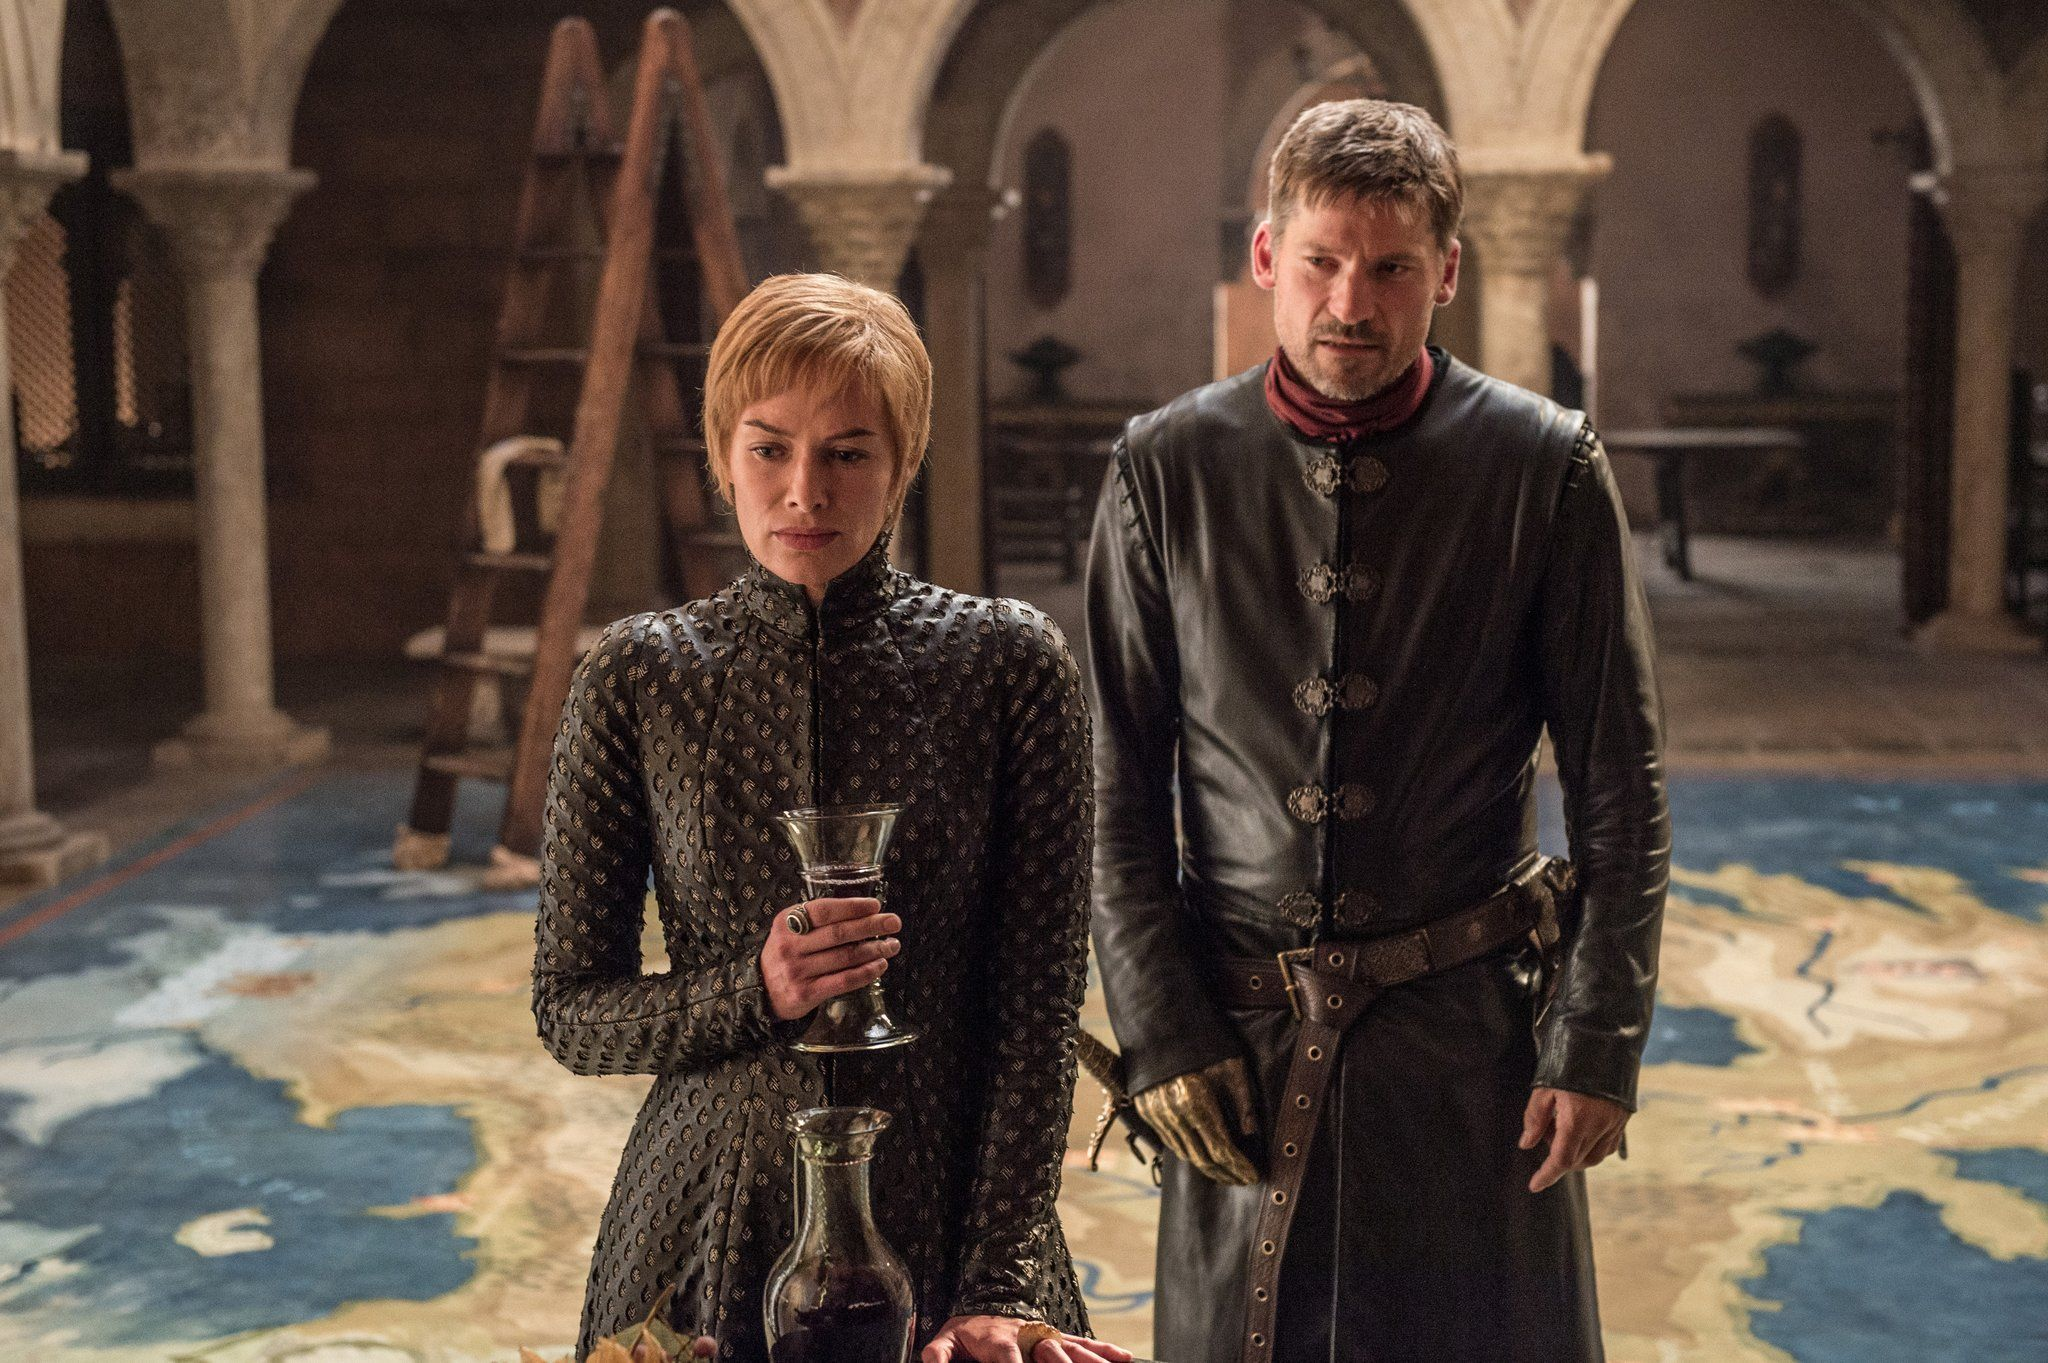 Cersei holds a glass and stands next to Jaime Lannister